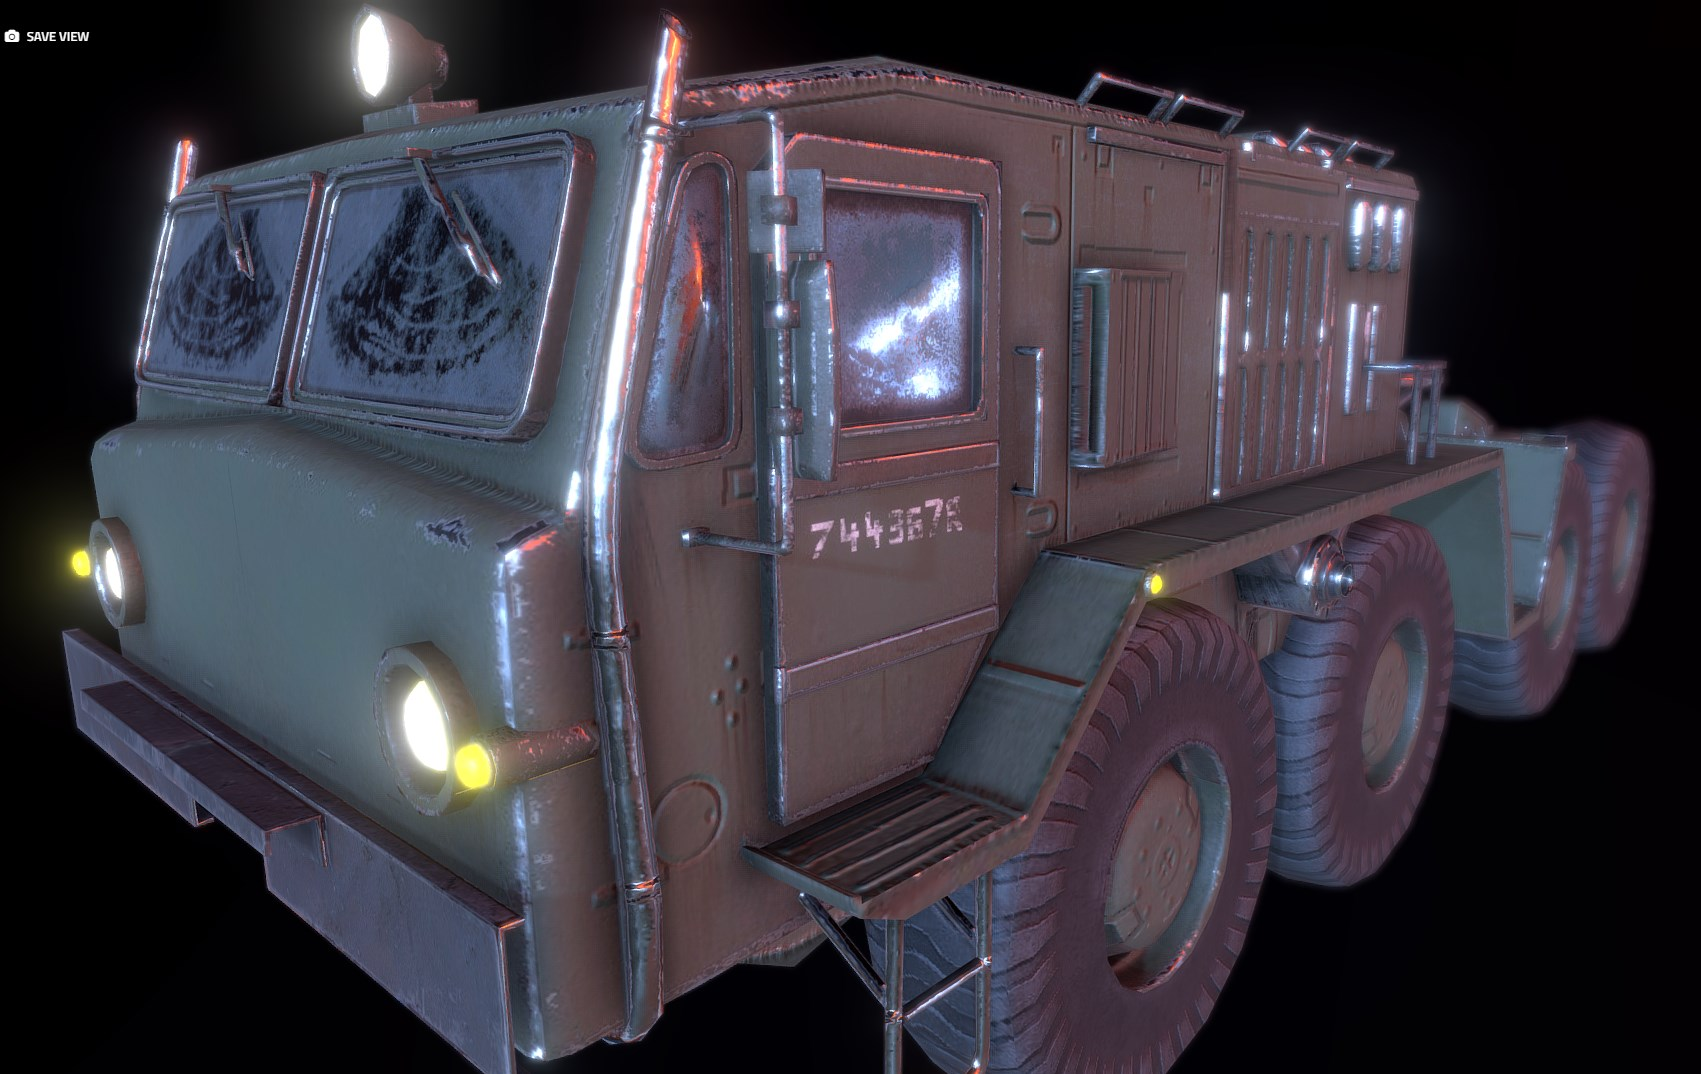 Russian Military Vehicles [29 Prefabs] [Optimized/LP] [PBR]